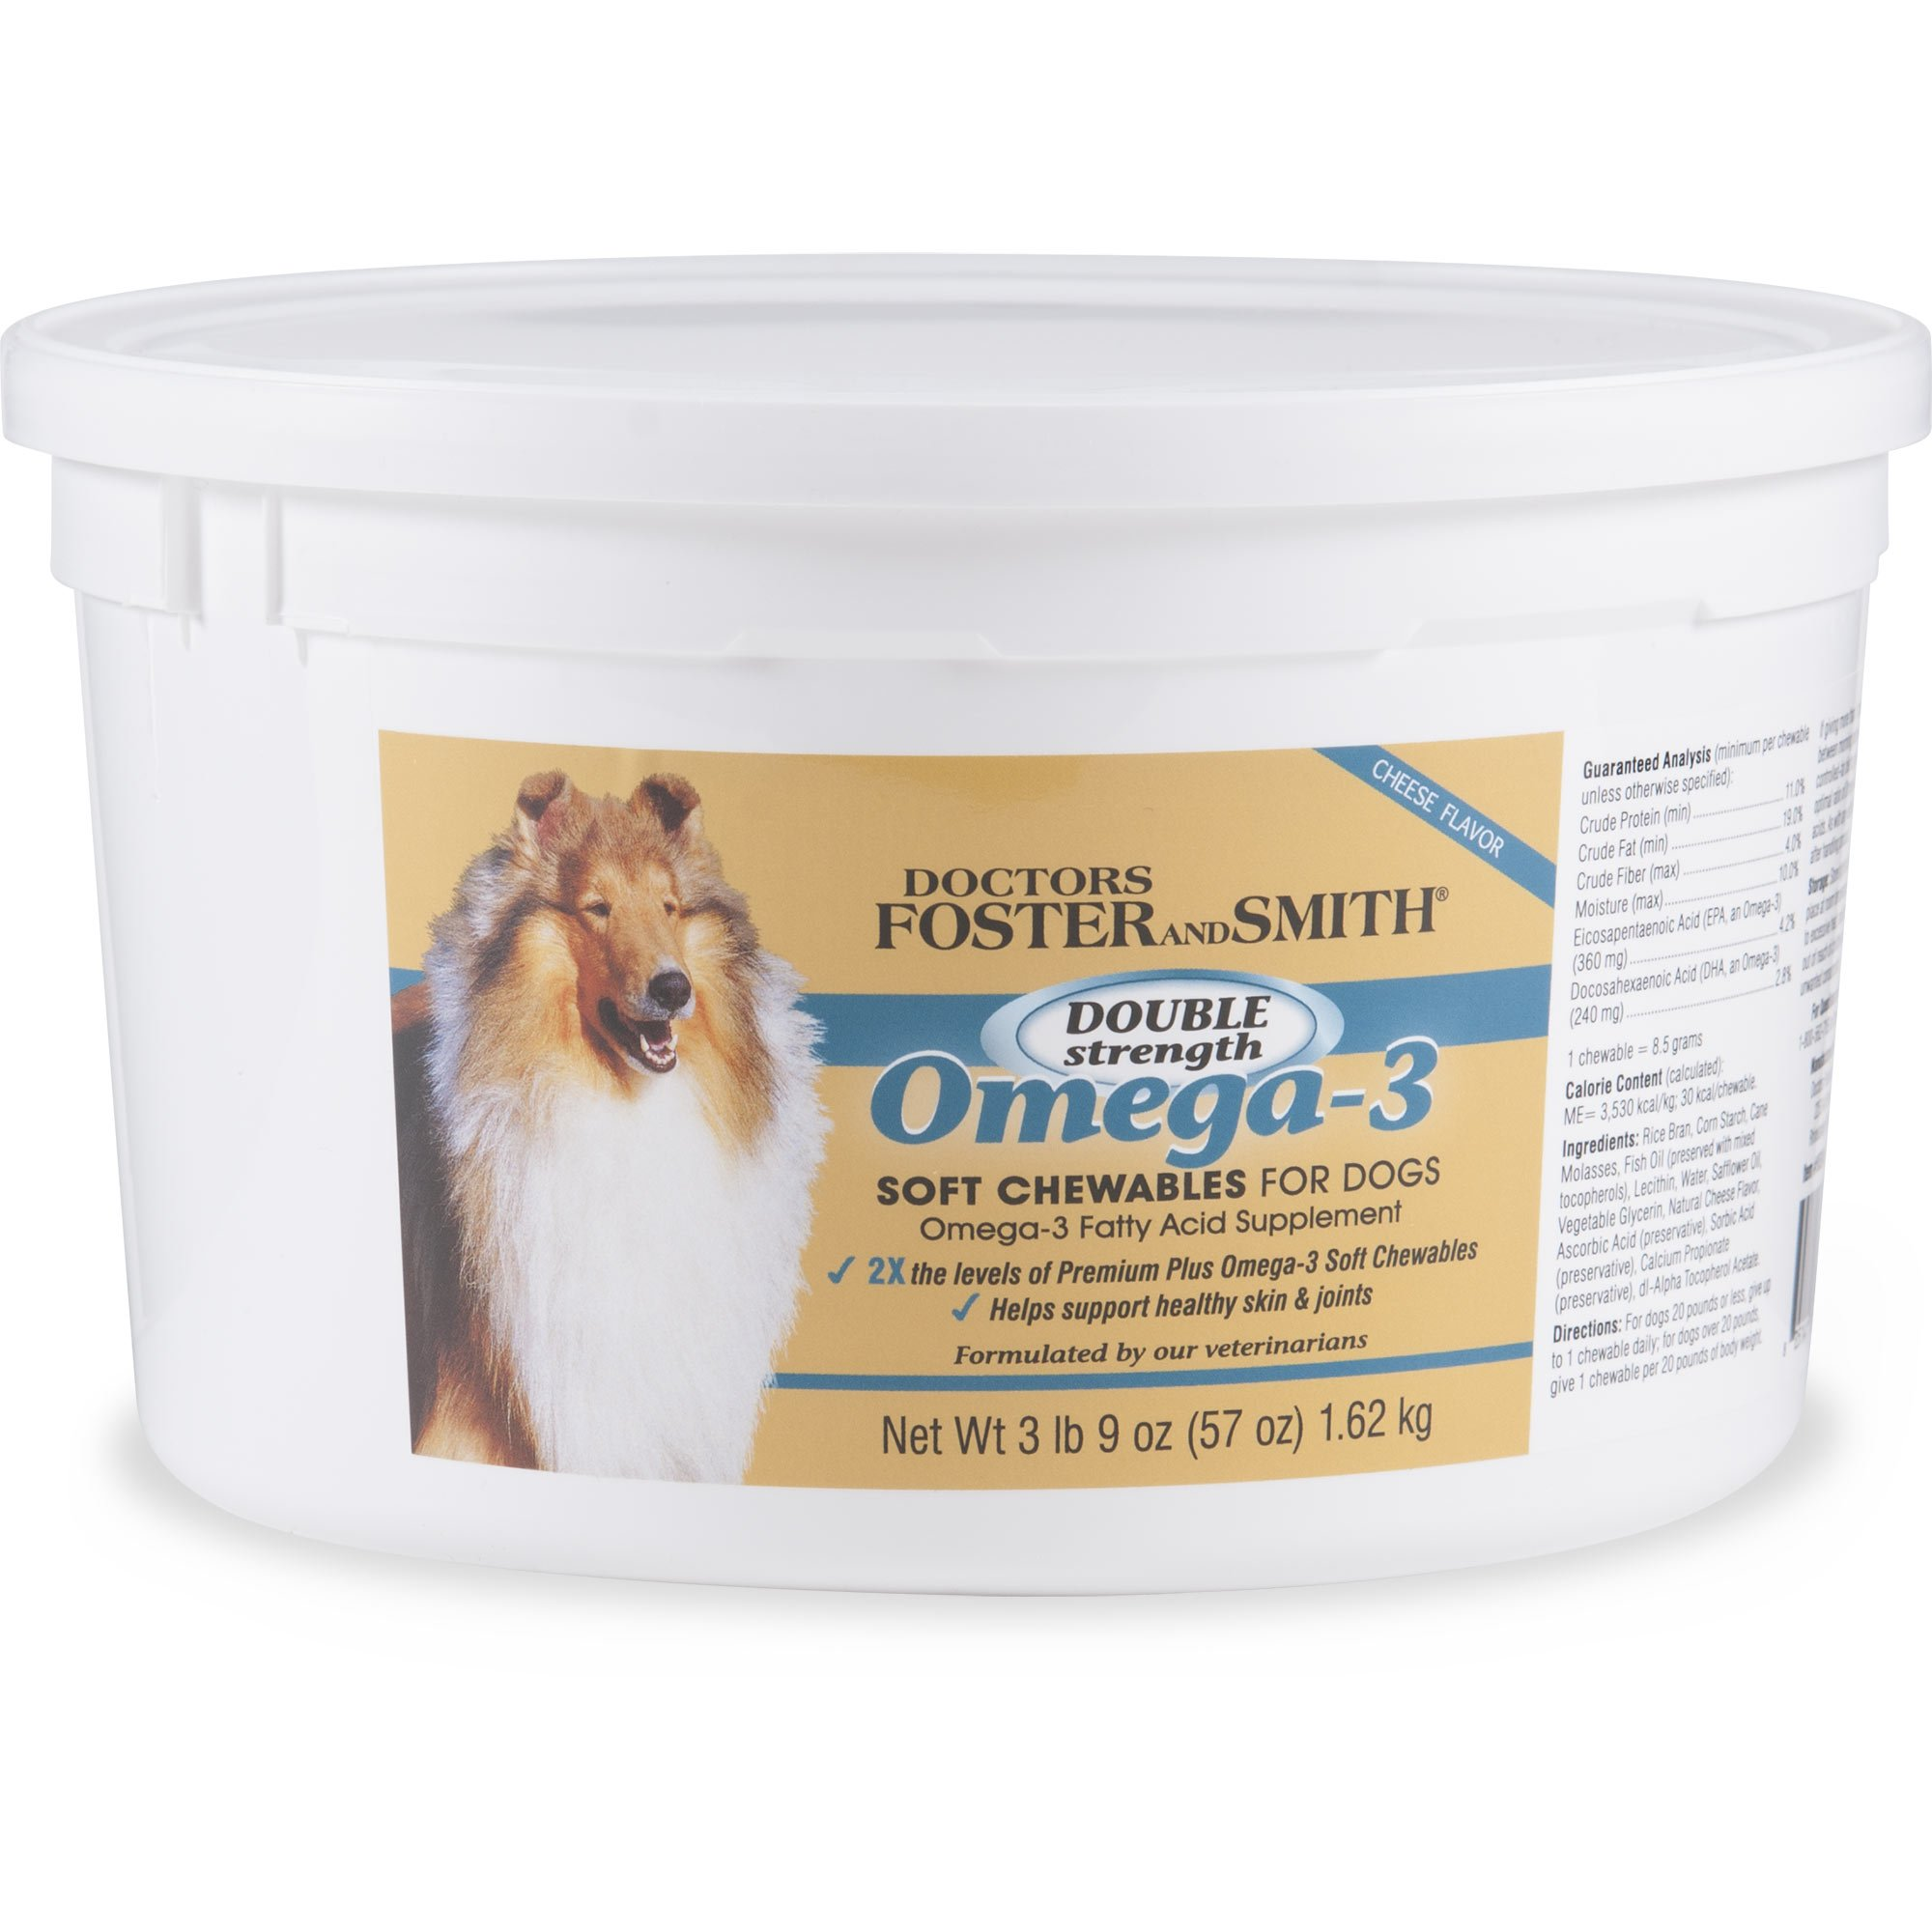 Drs  Foster and Smith Double Strength Omega-3 Soft Chews for Dogs | Petco